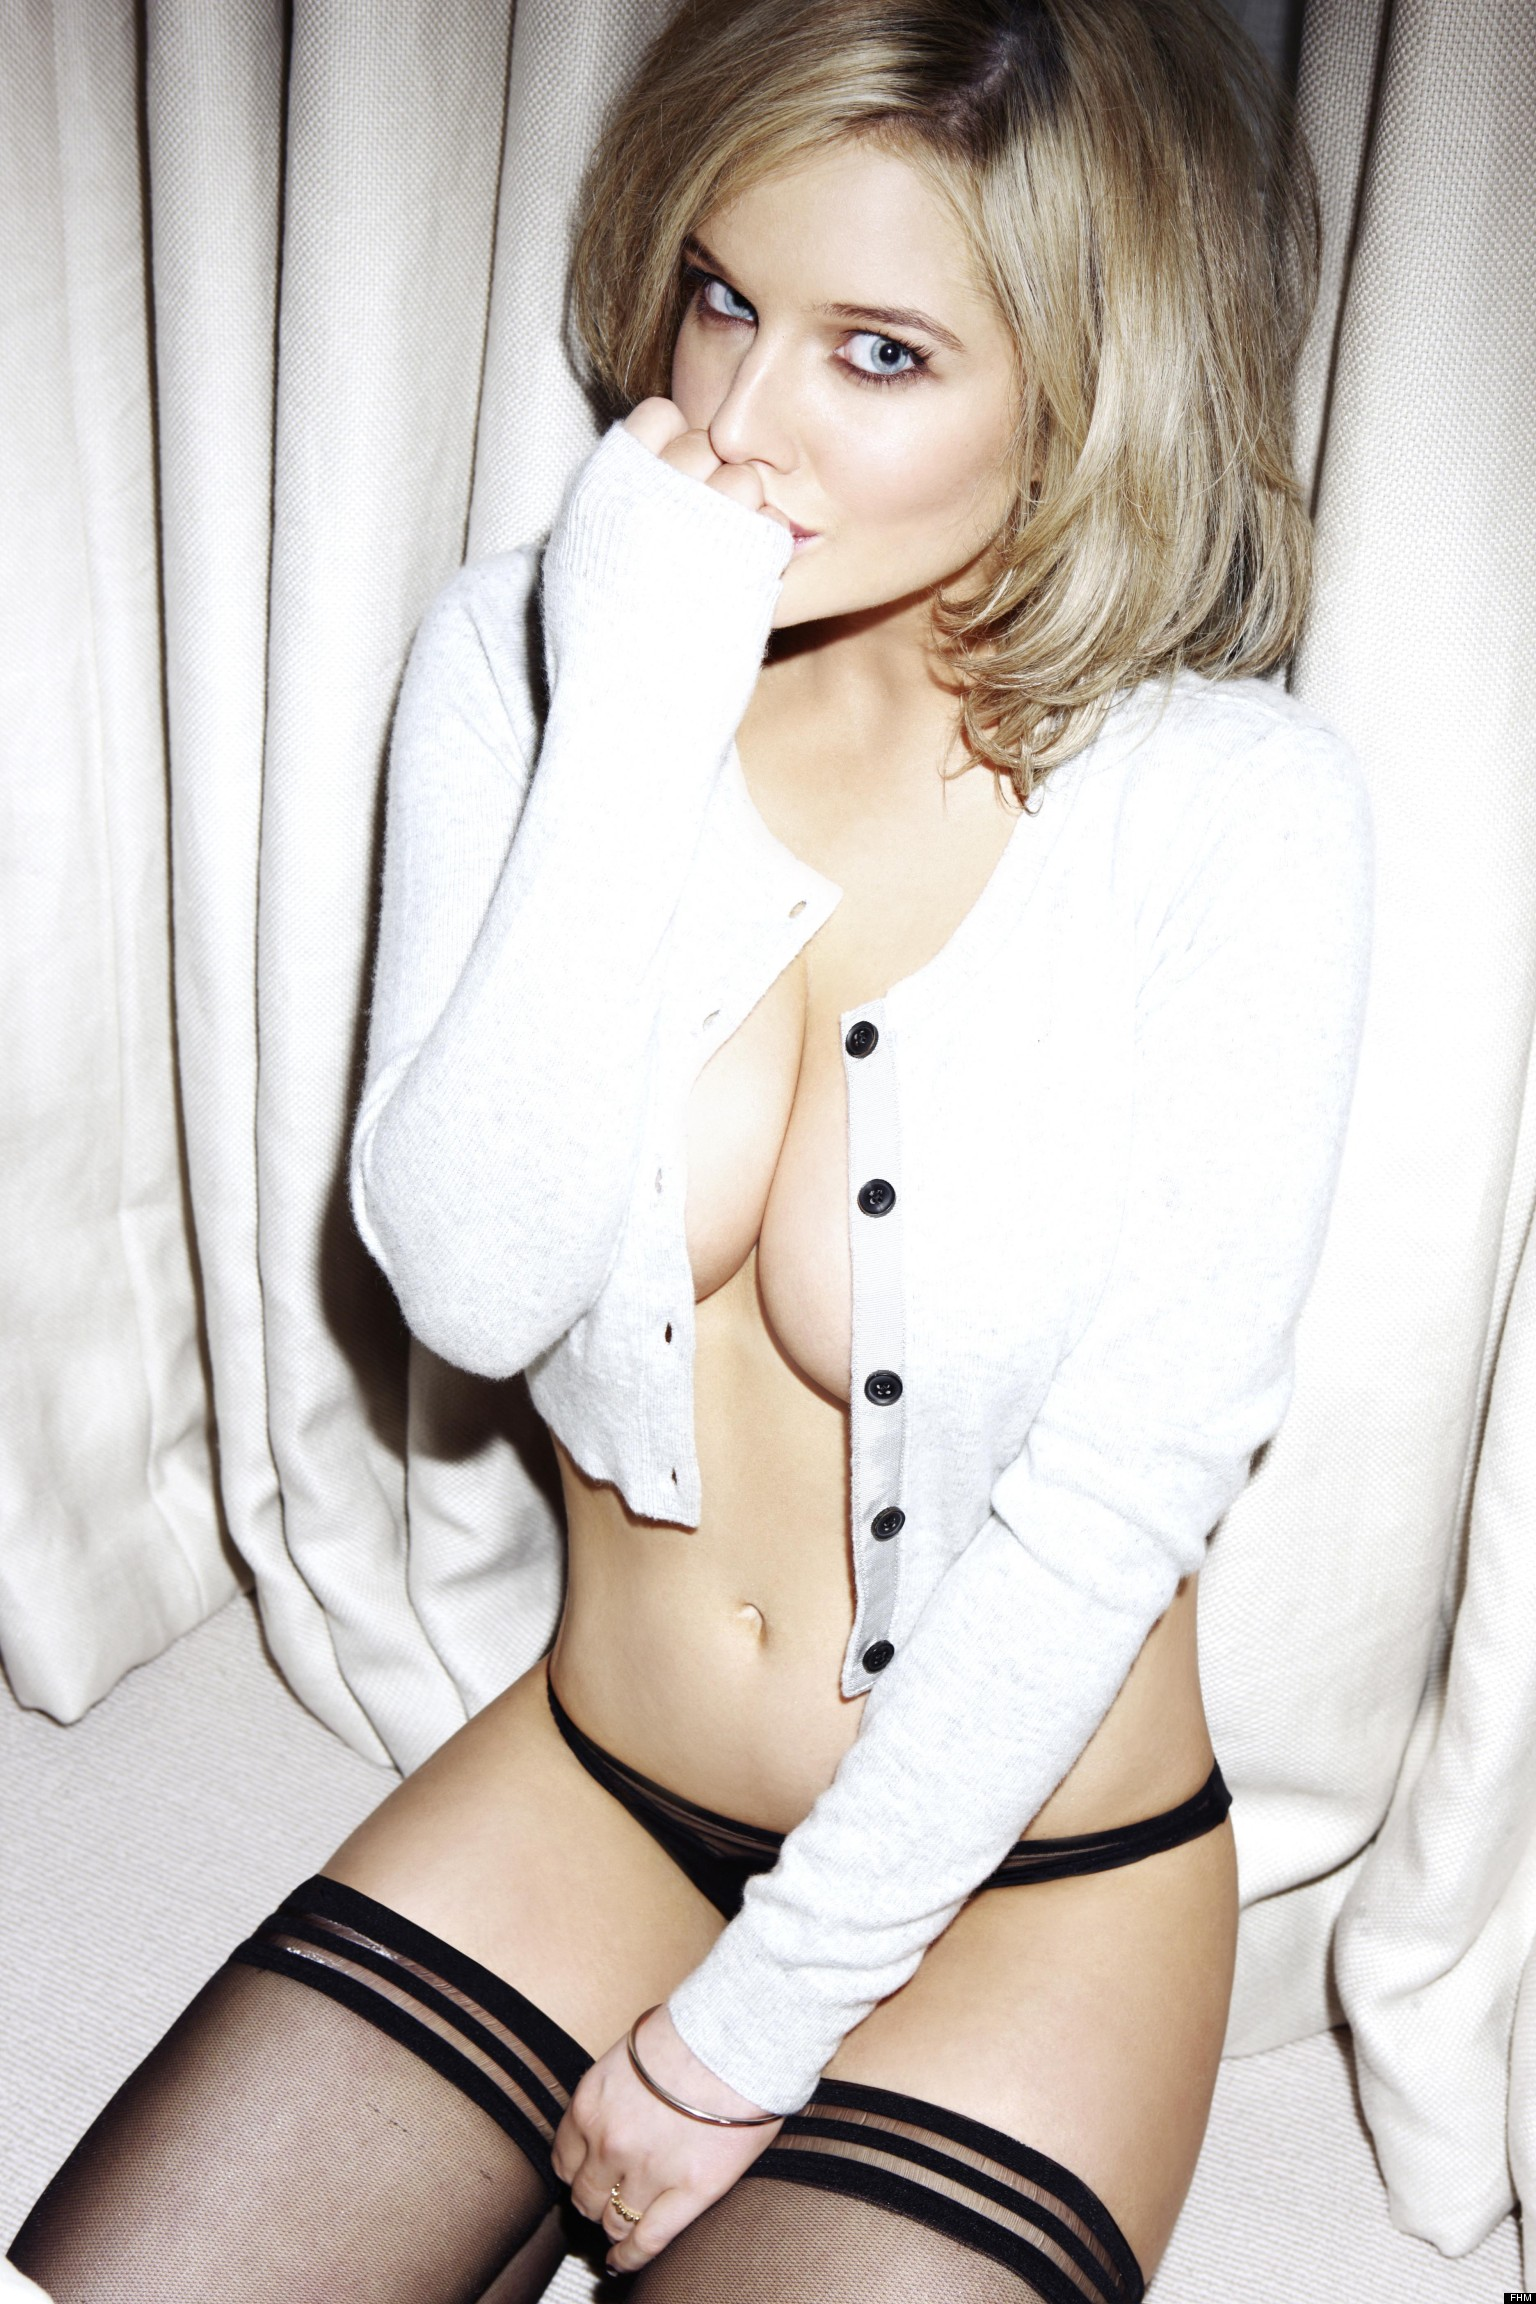 Helen flanagan calendar are absolutely